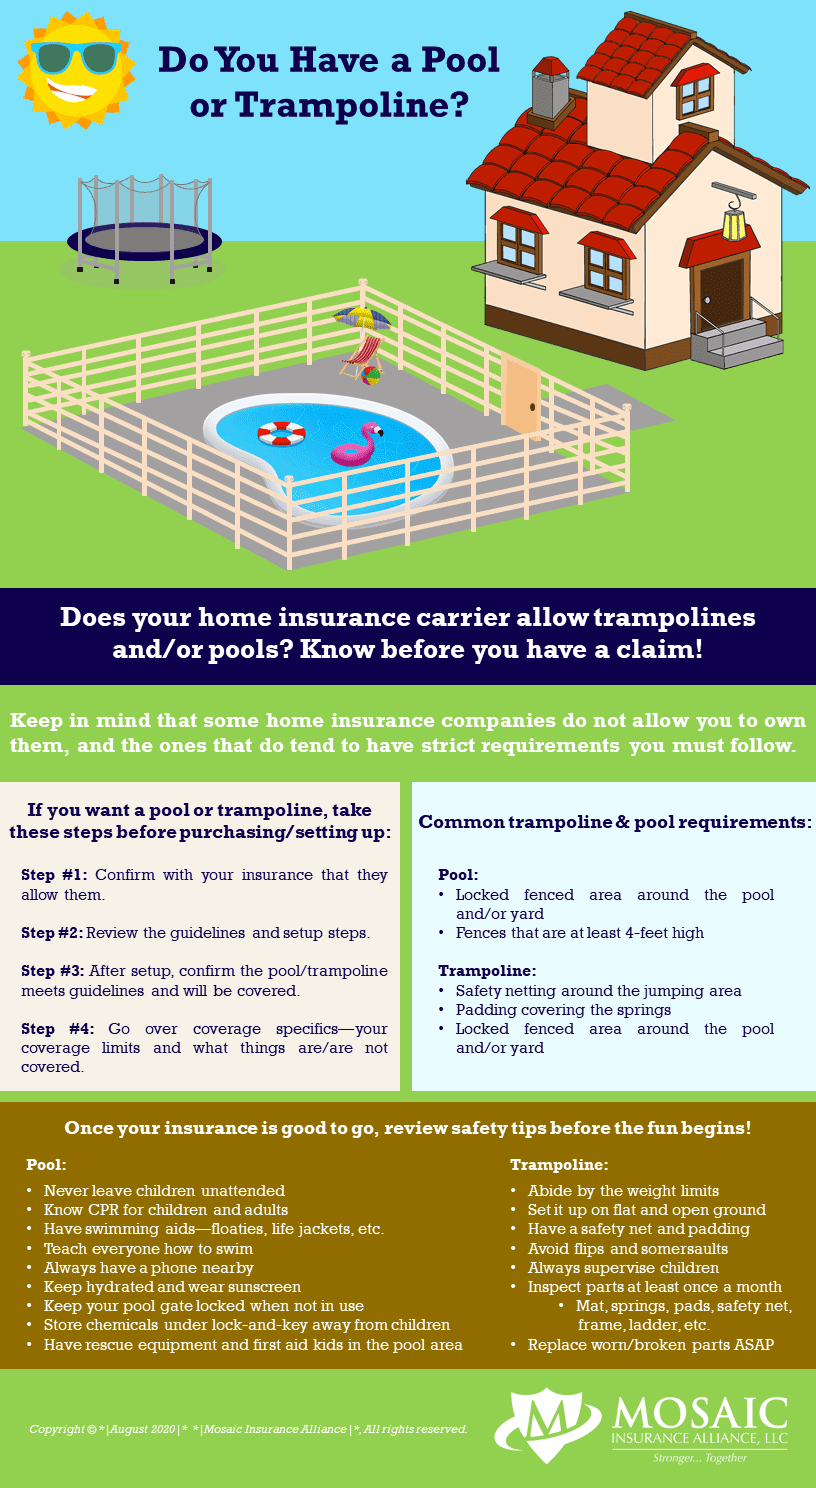 Do you need pool or trampoline insurance? Ask Mosaic!